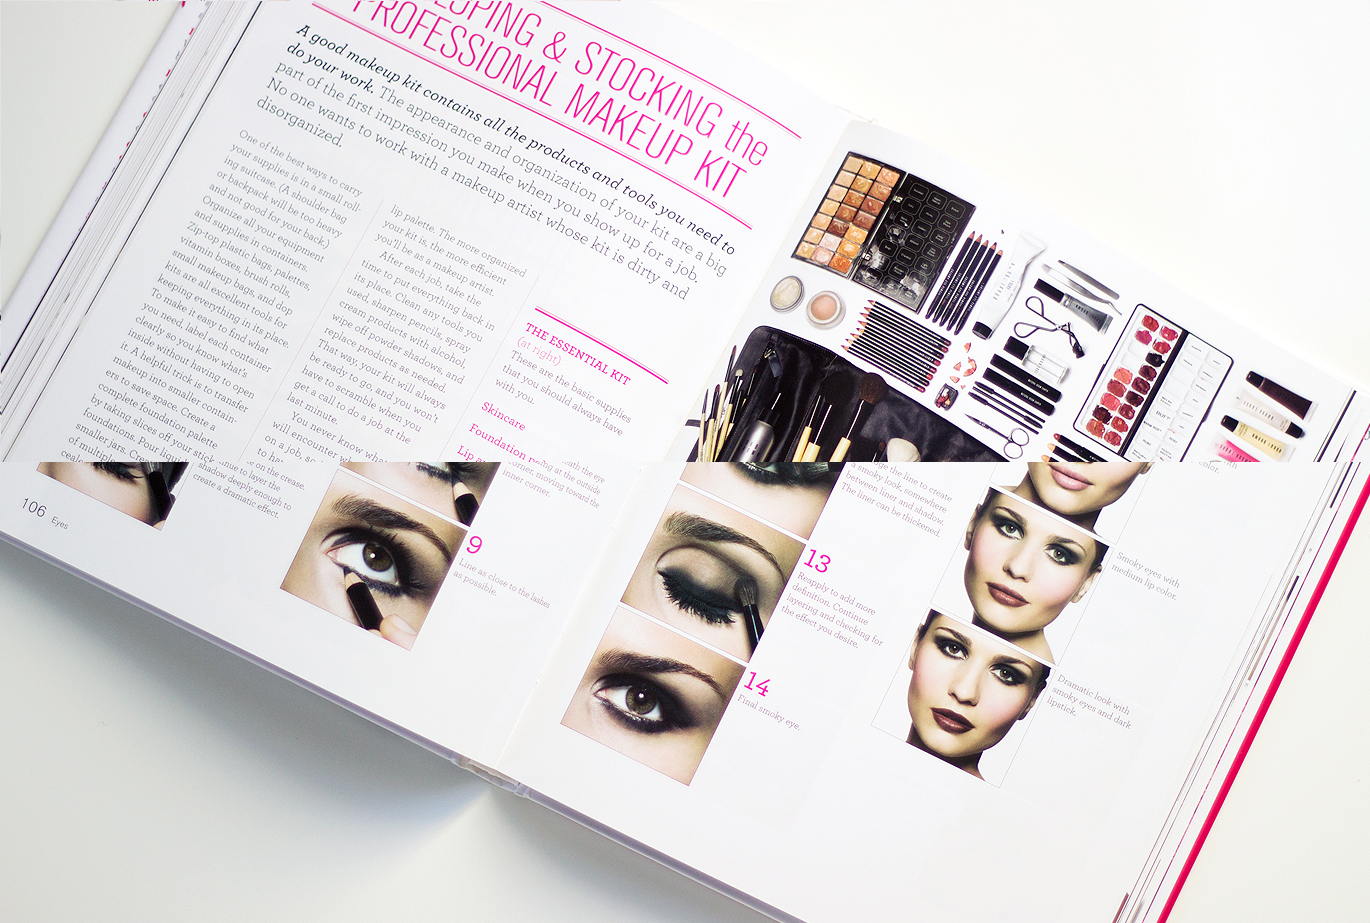 Bobbi Brown Makeup Manual, Bobbi Brown Makeup Manual Review, Bobbi Brown Makeup Manual Book Review Blog